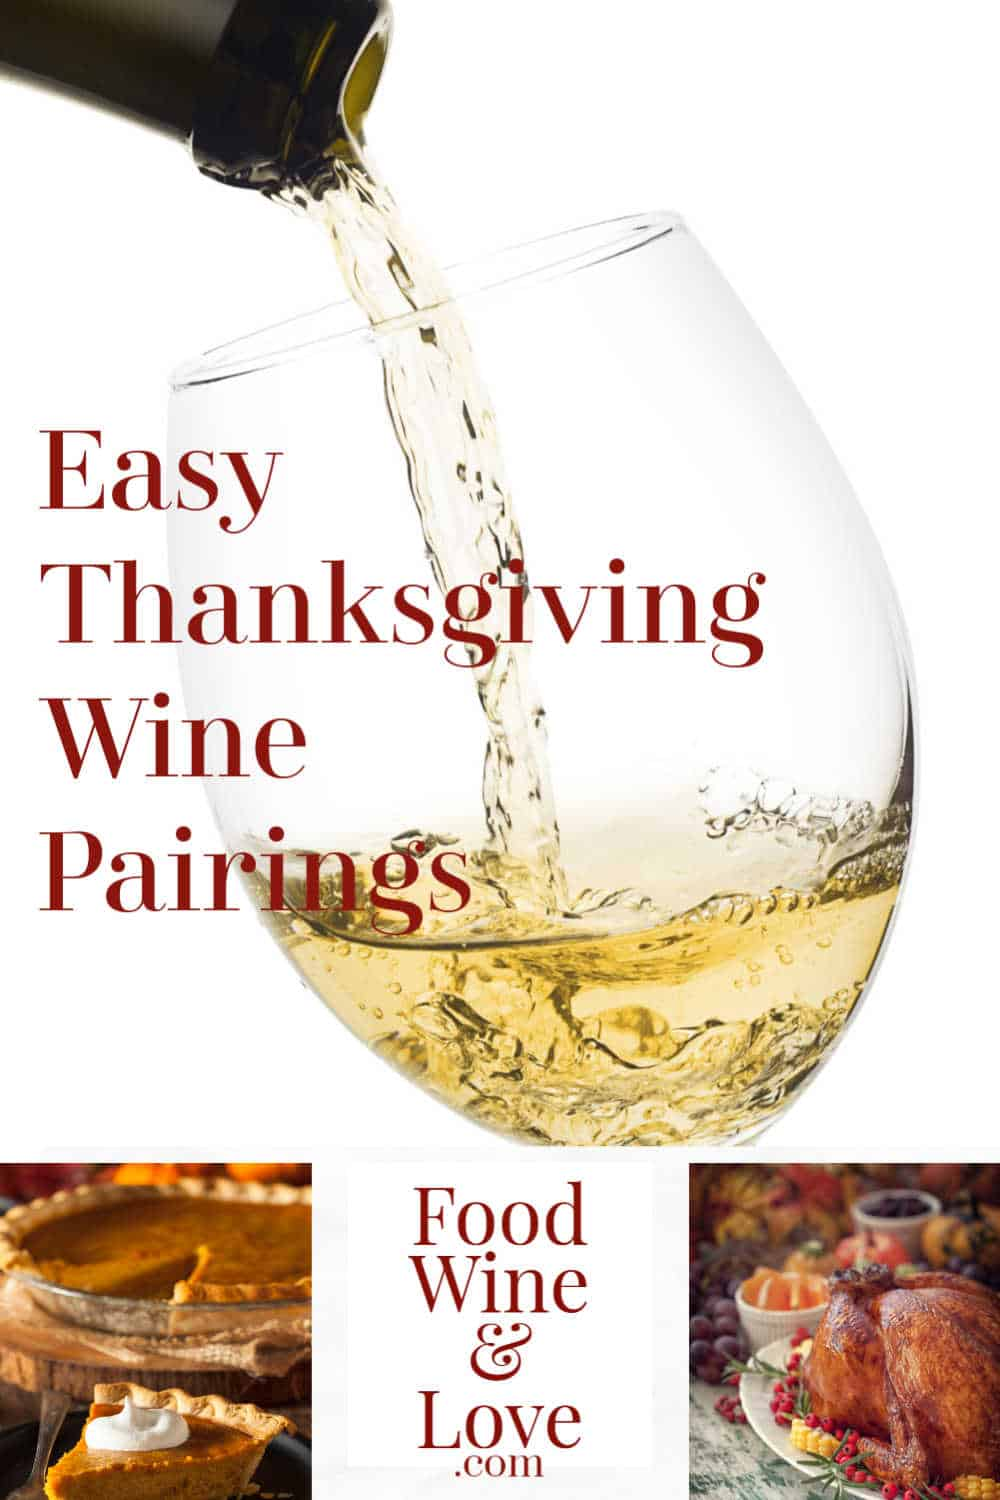 Easy Thanksgiving Wine Pairings